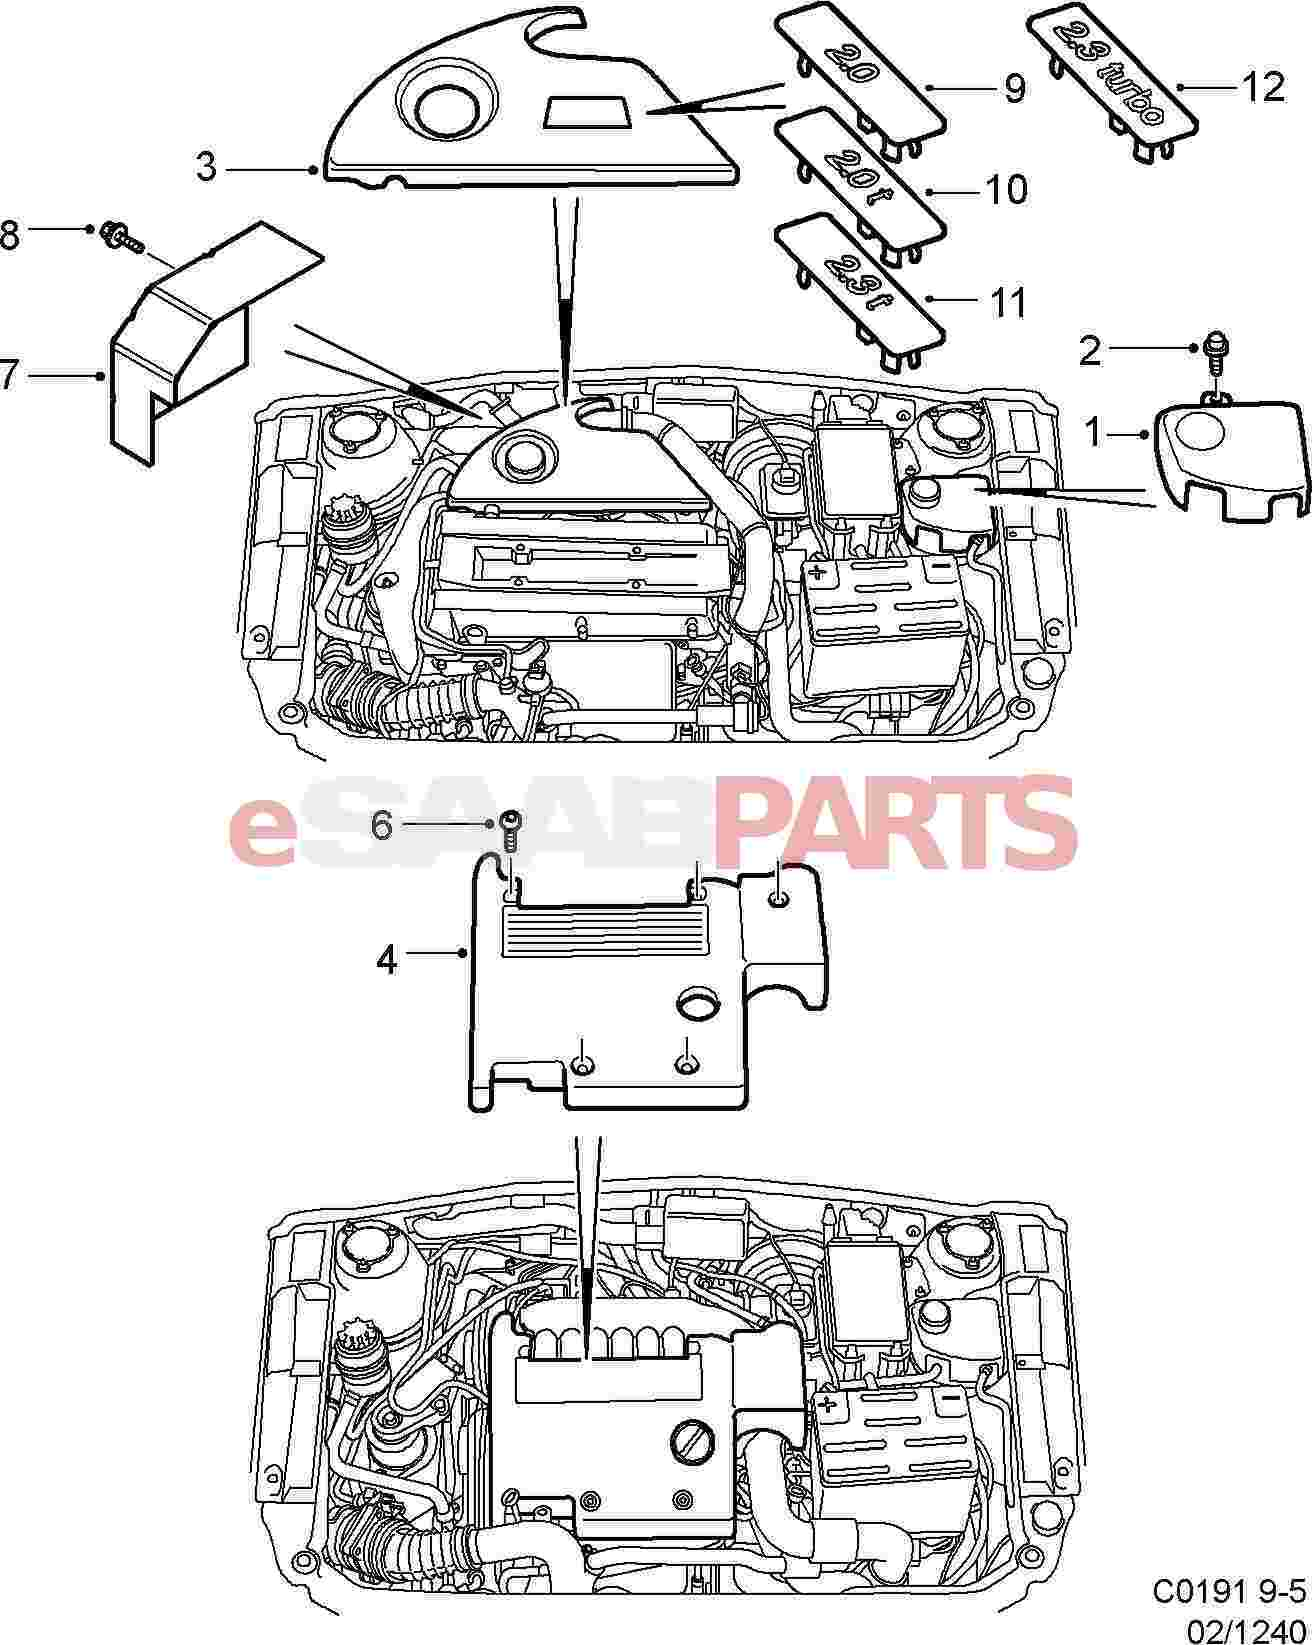 5956958 saab engine cover genuine saab parts from esaabparts com diagram image 3